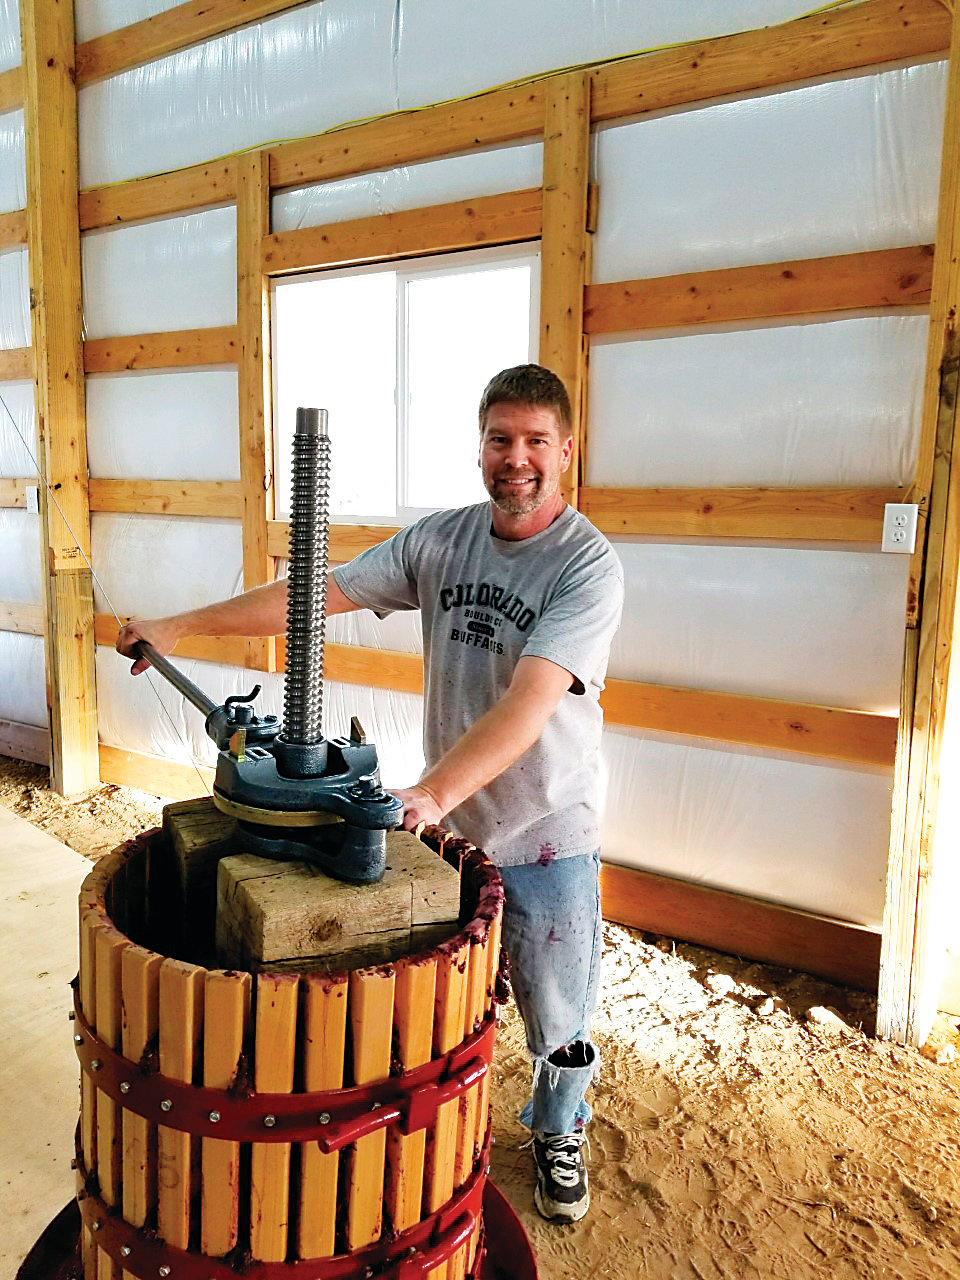 Tony Baker, owner of Third Bridge winery, presses grapes as part of the wine-making process. Third Bridge wines will be among the featured beverages at the Oct. 6 Wine in the Pines event held on Main Street in Elizabeth. The event featuring wine tasting and entertainment will run from 4 to 8 p.m.